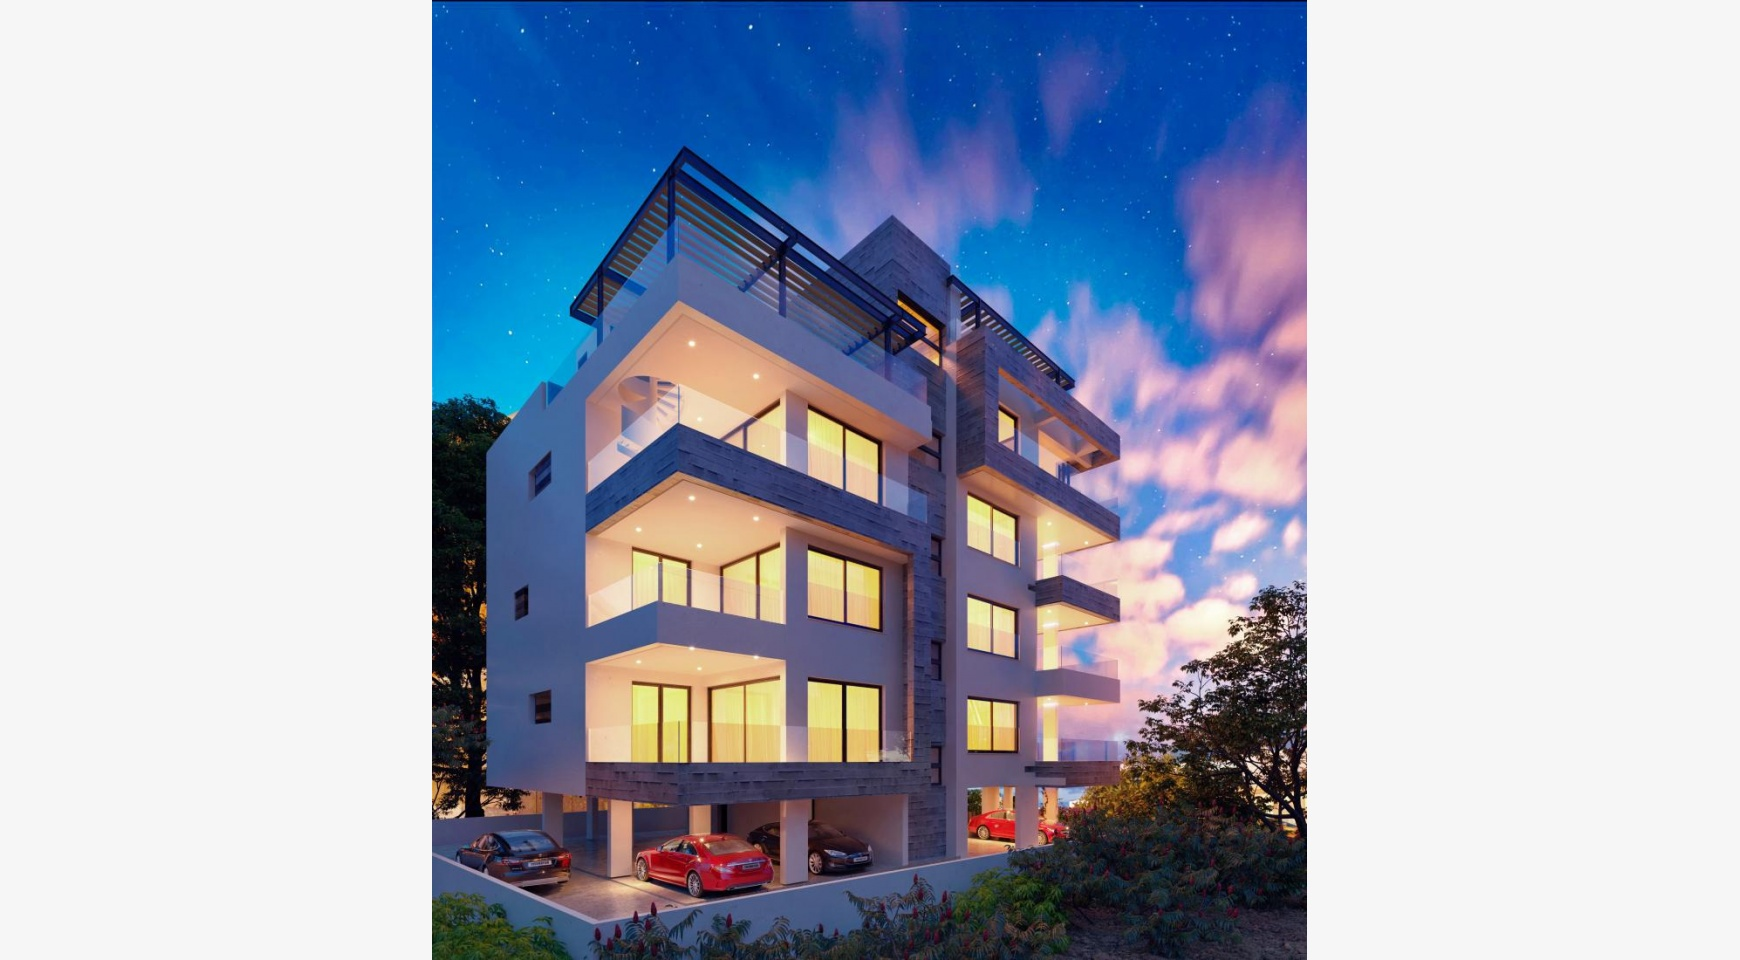 New 2 Bedroom Apartment in a Modern Building near the Beach - 3